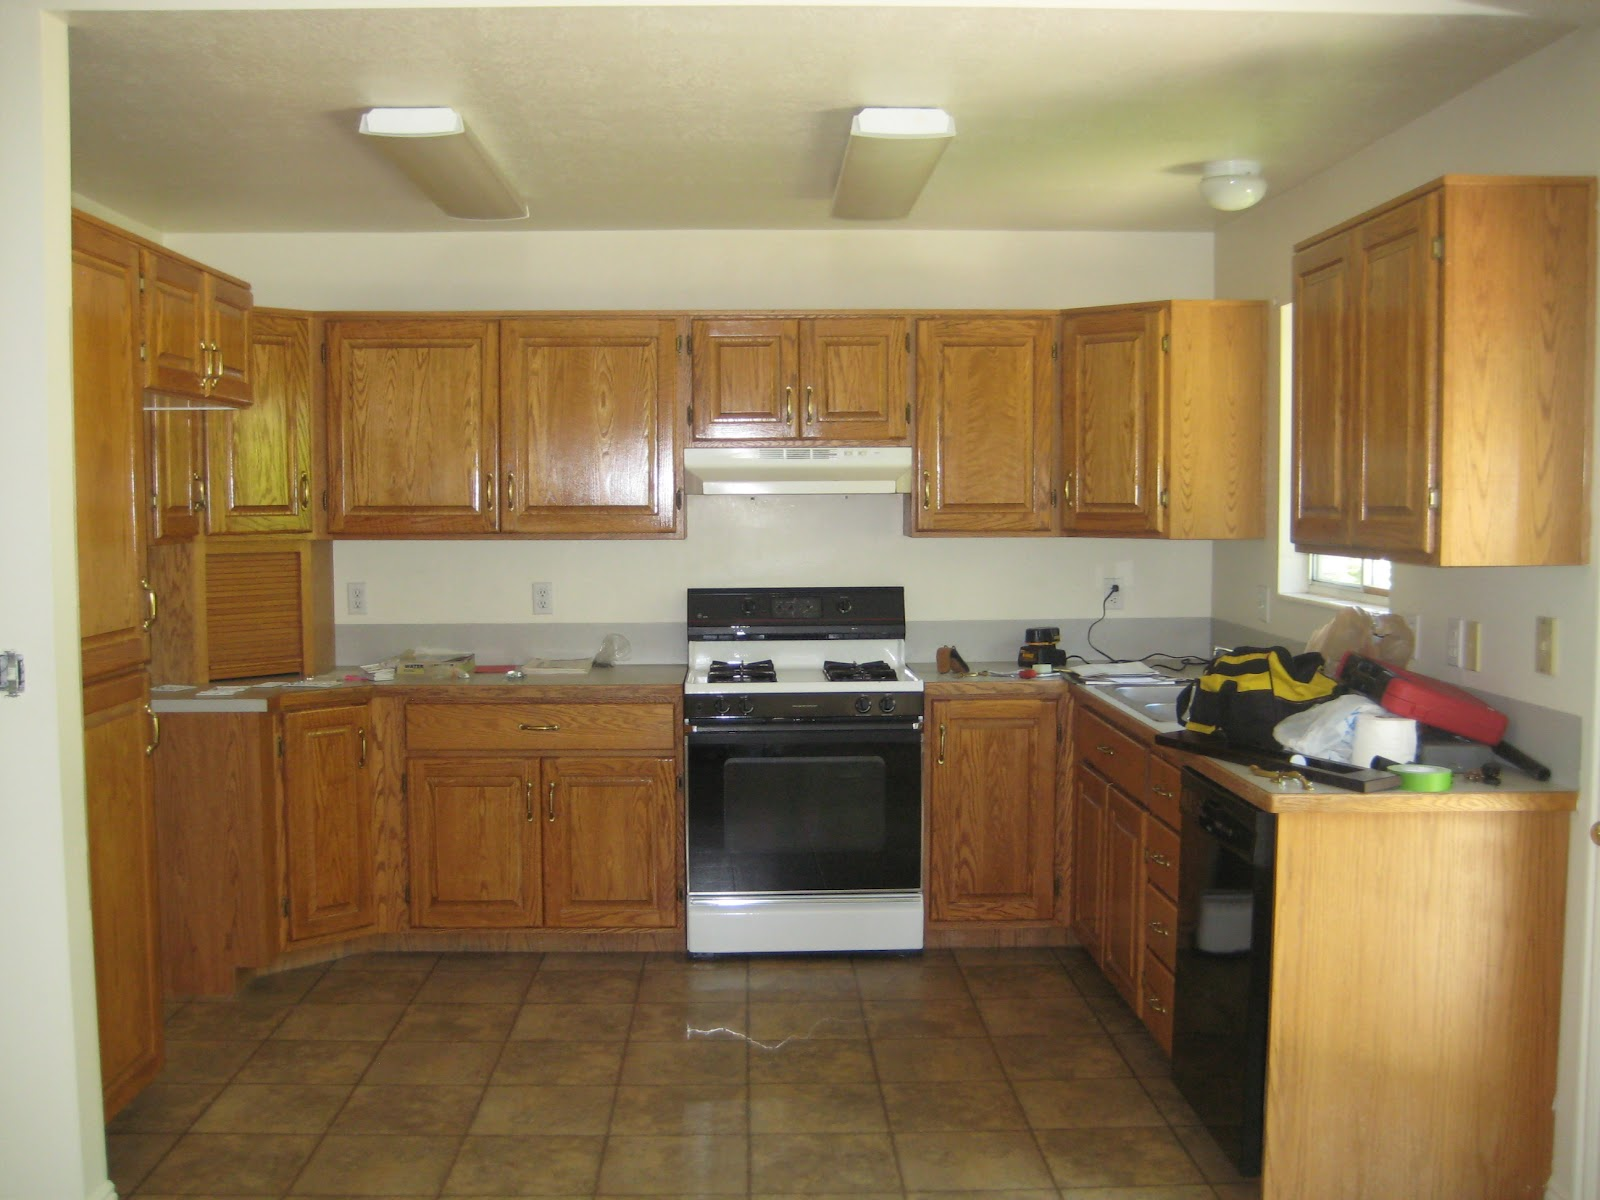 cheapest way to remodel a kitchen kitchen remodels kitchen remodels